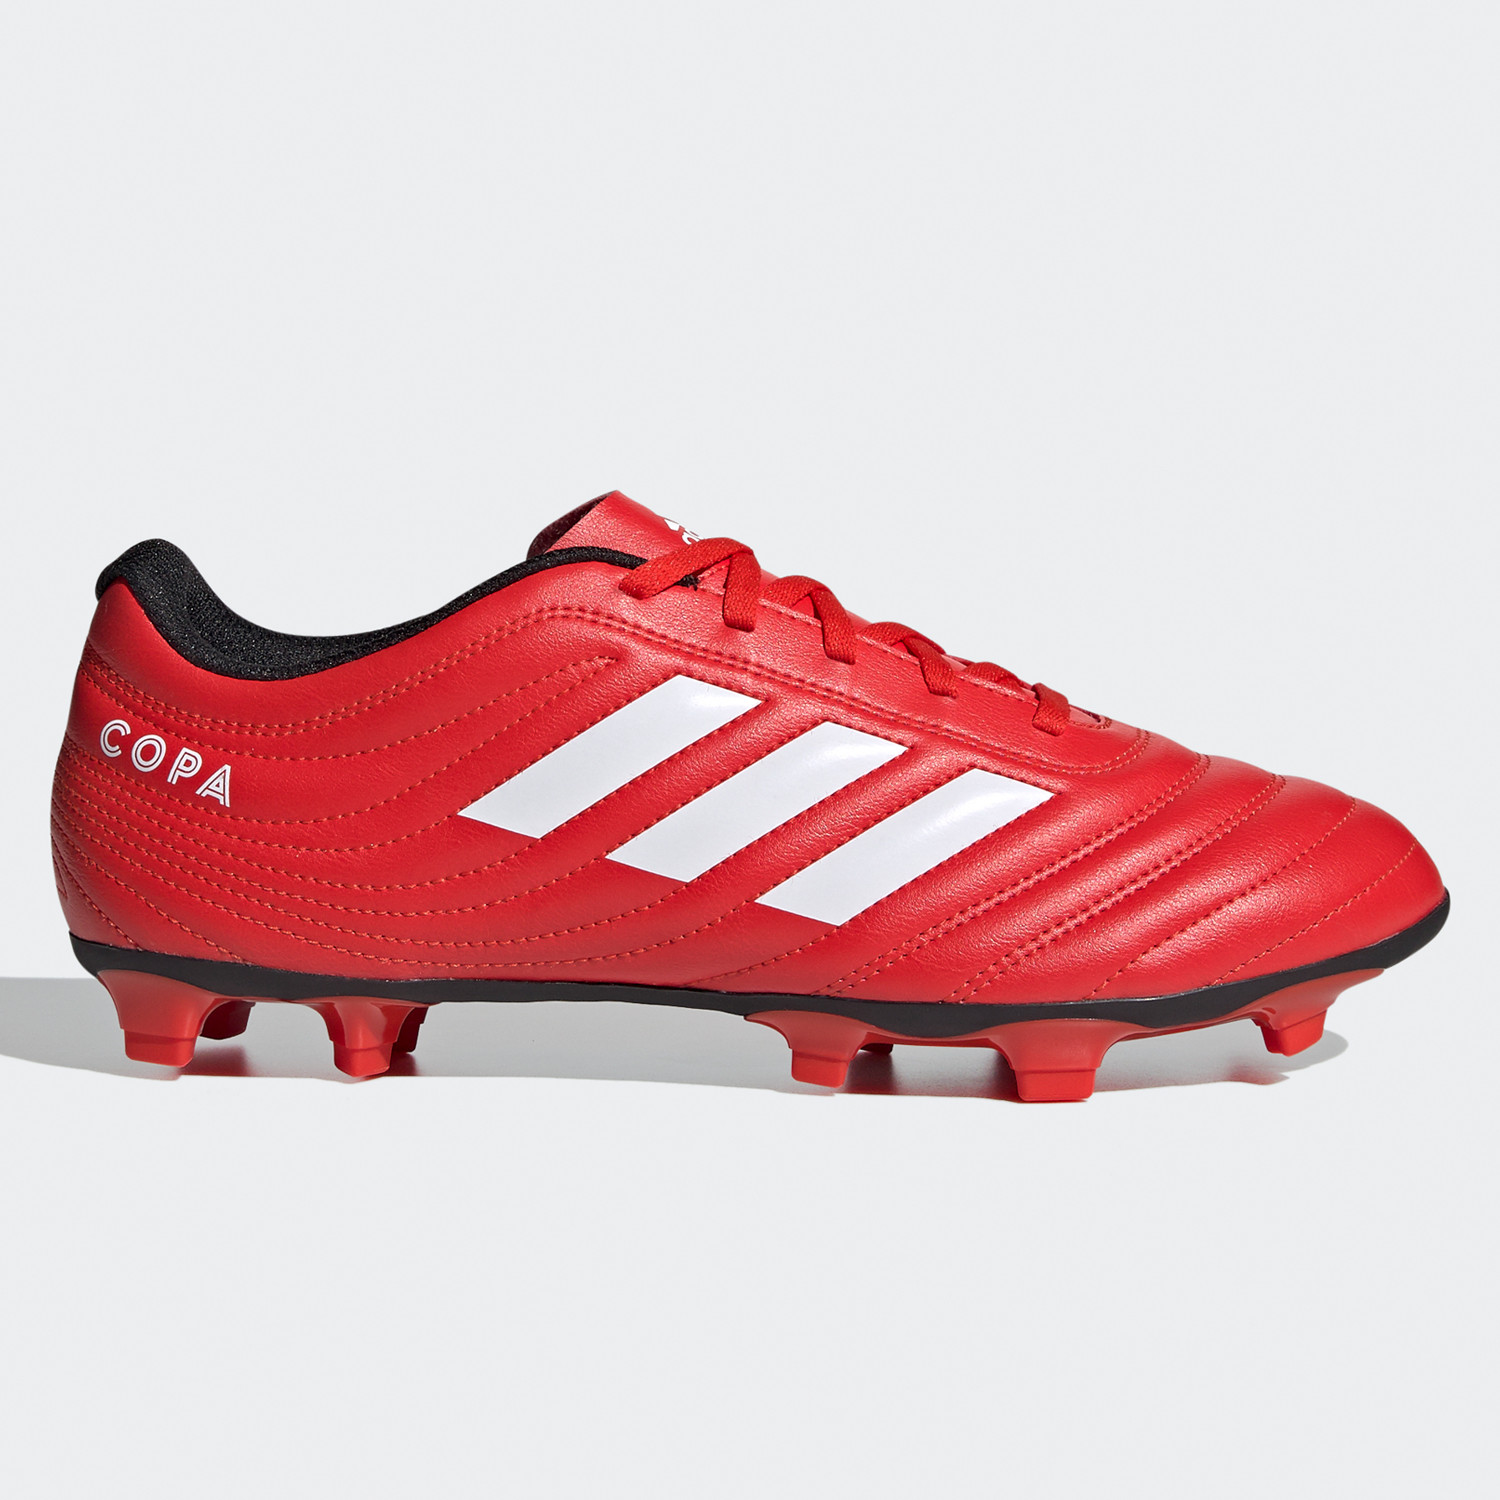 adidas Copa 20.4 FG Football Shoes (9000045912_37115)